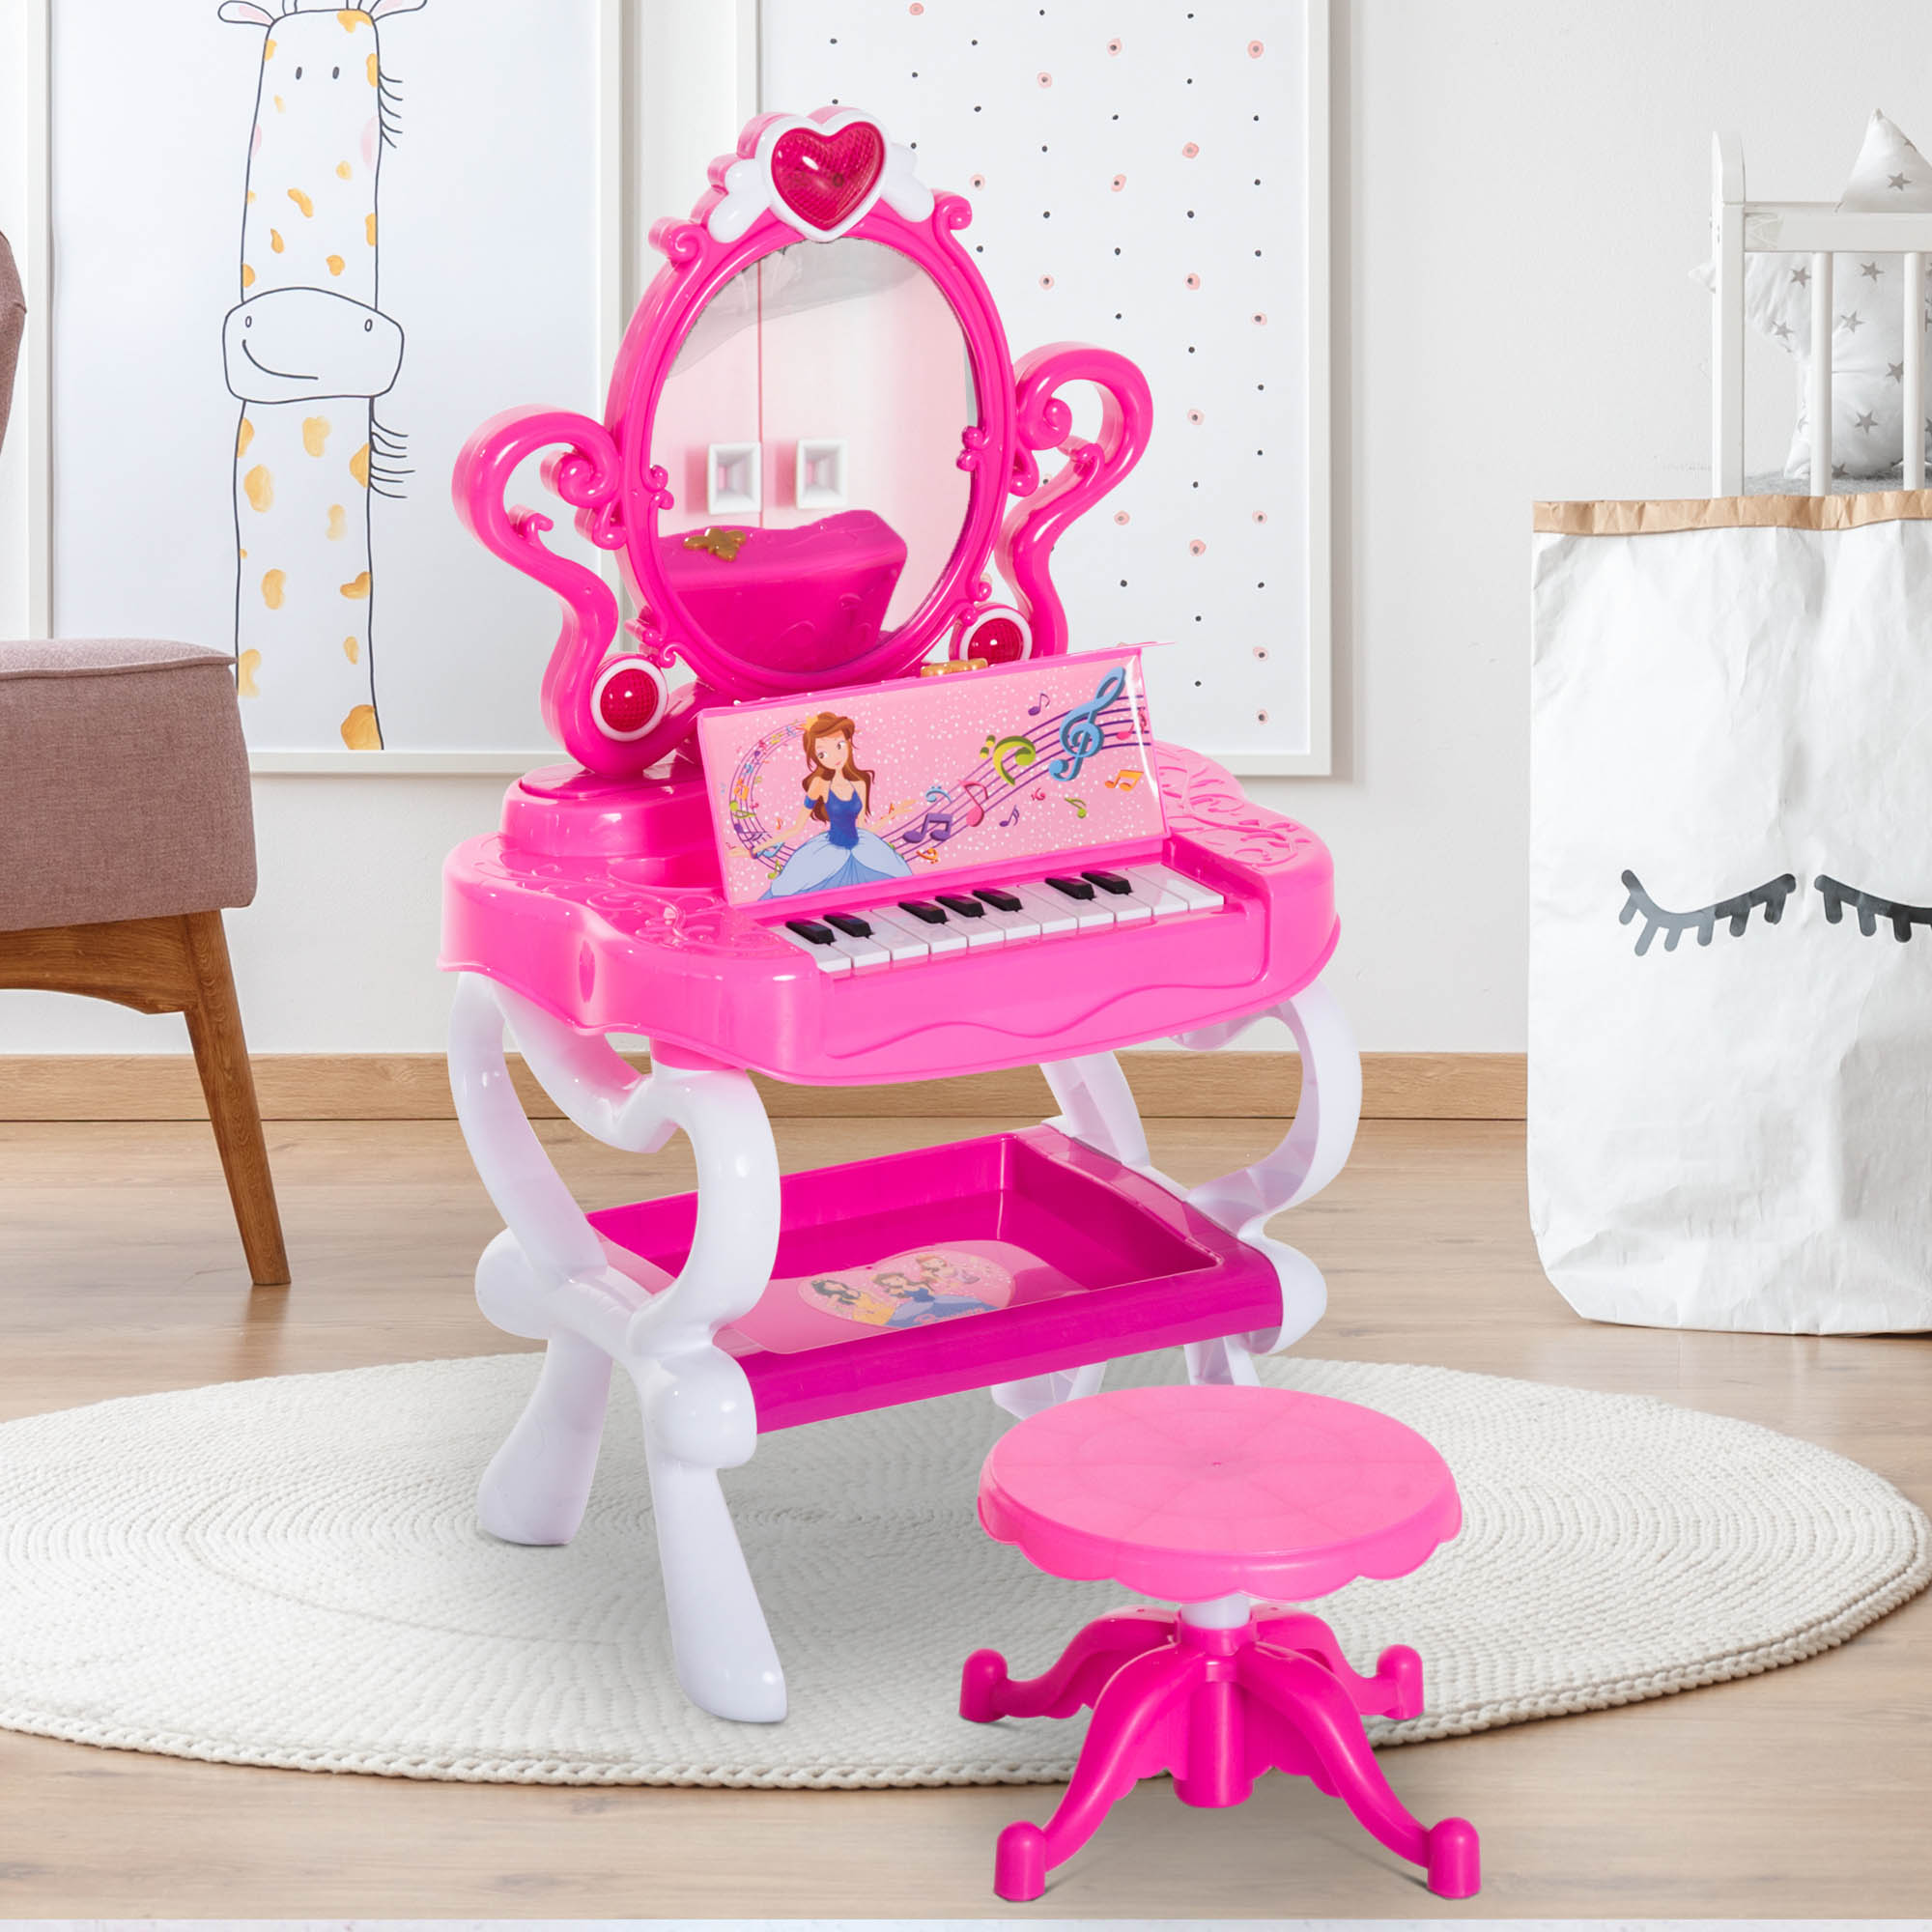 timeless design b82f0 45d10 Details about Kid Vanity Piano Table Set Flashing Lights Girls Makeup  Playset Princess Desk